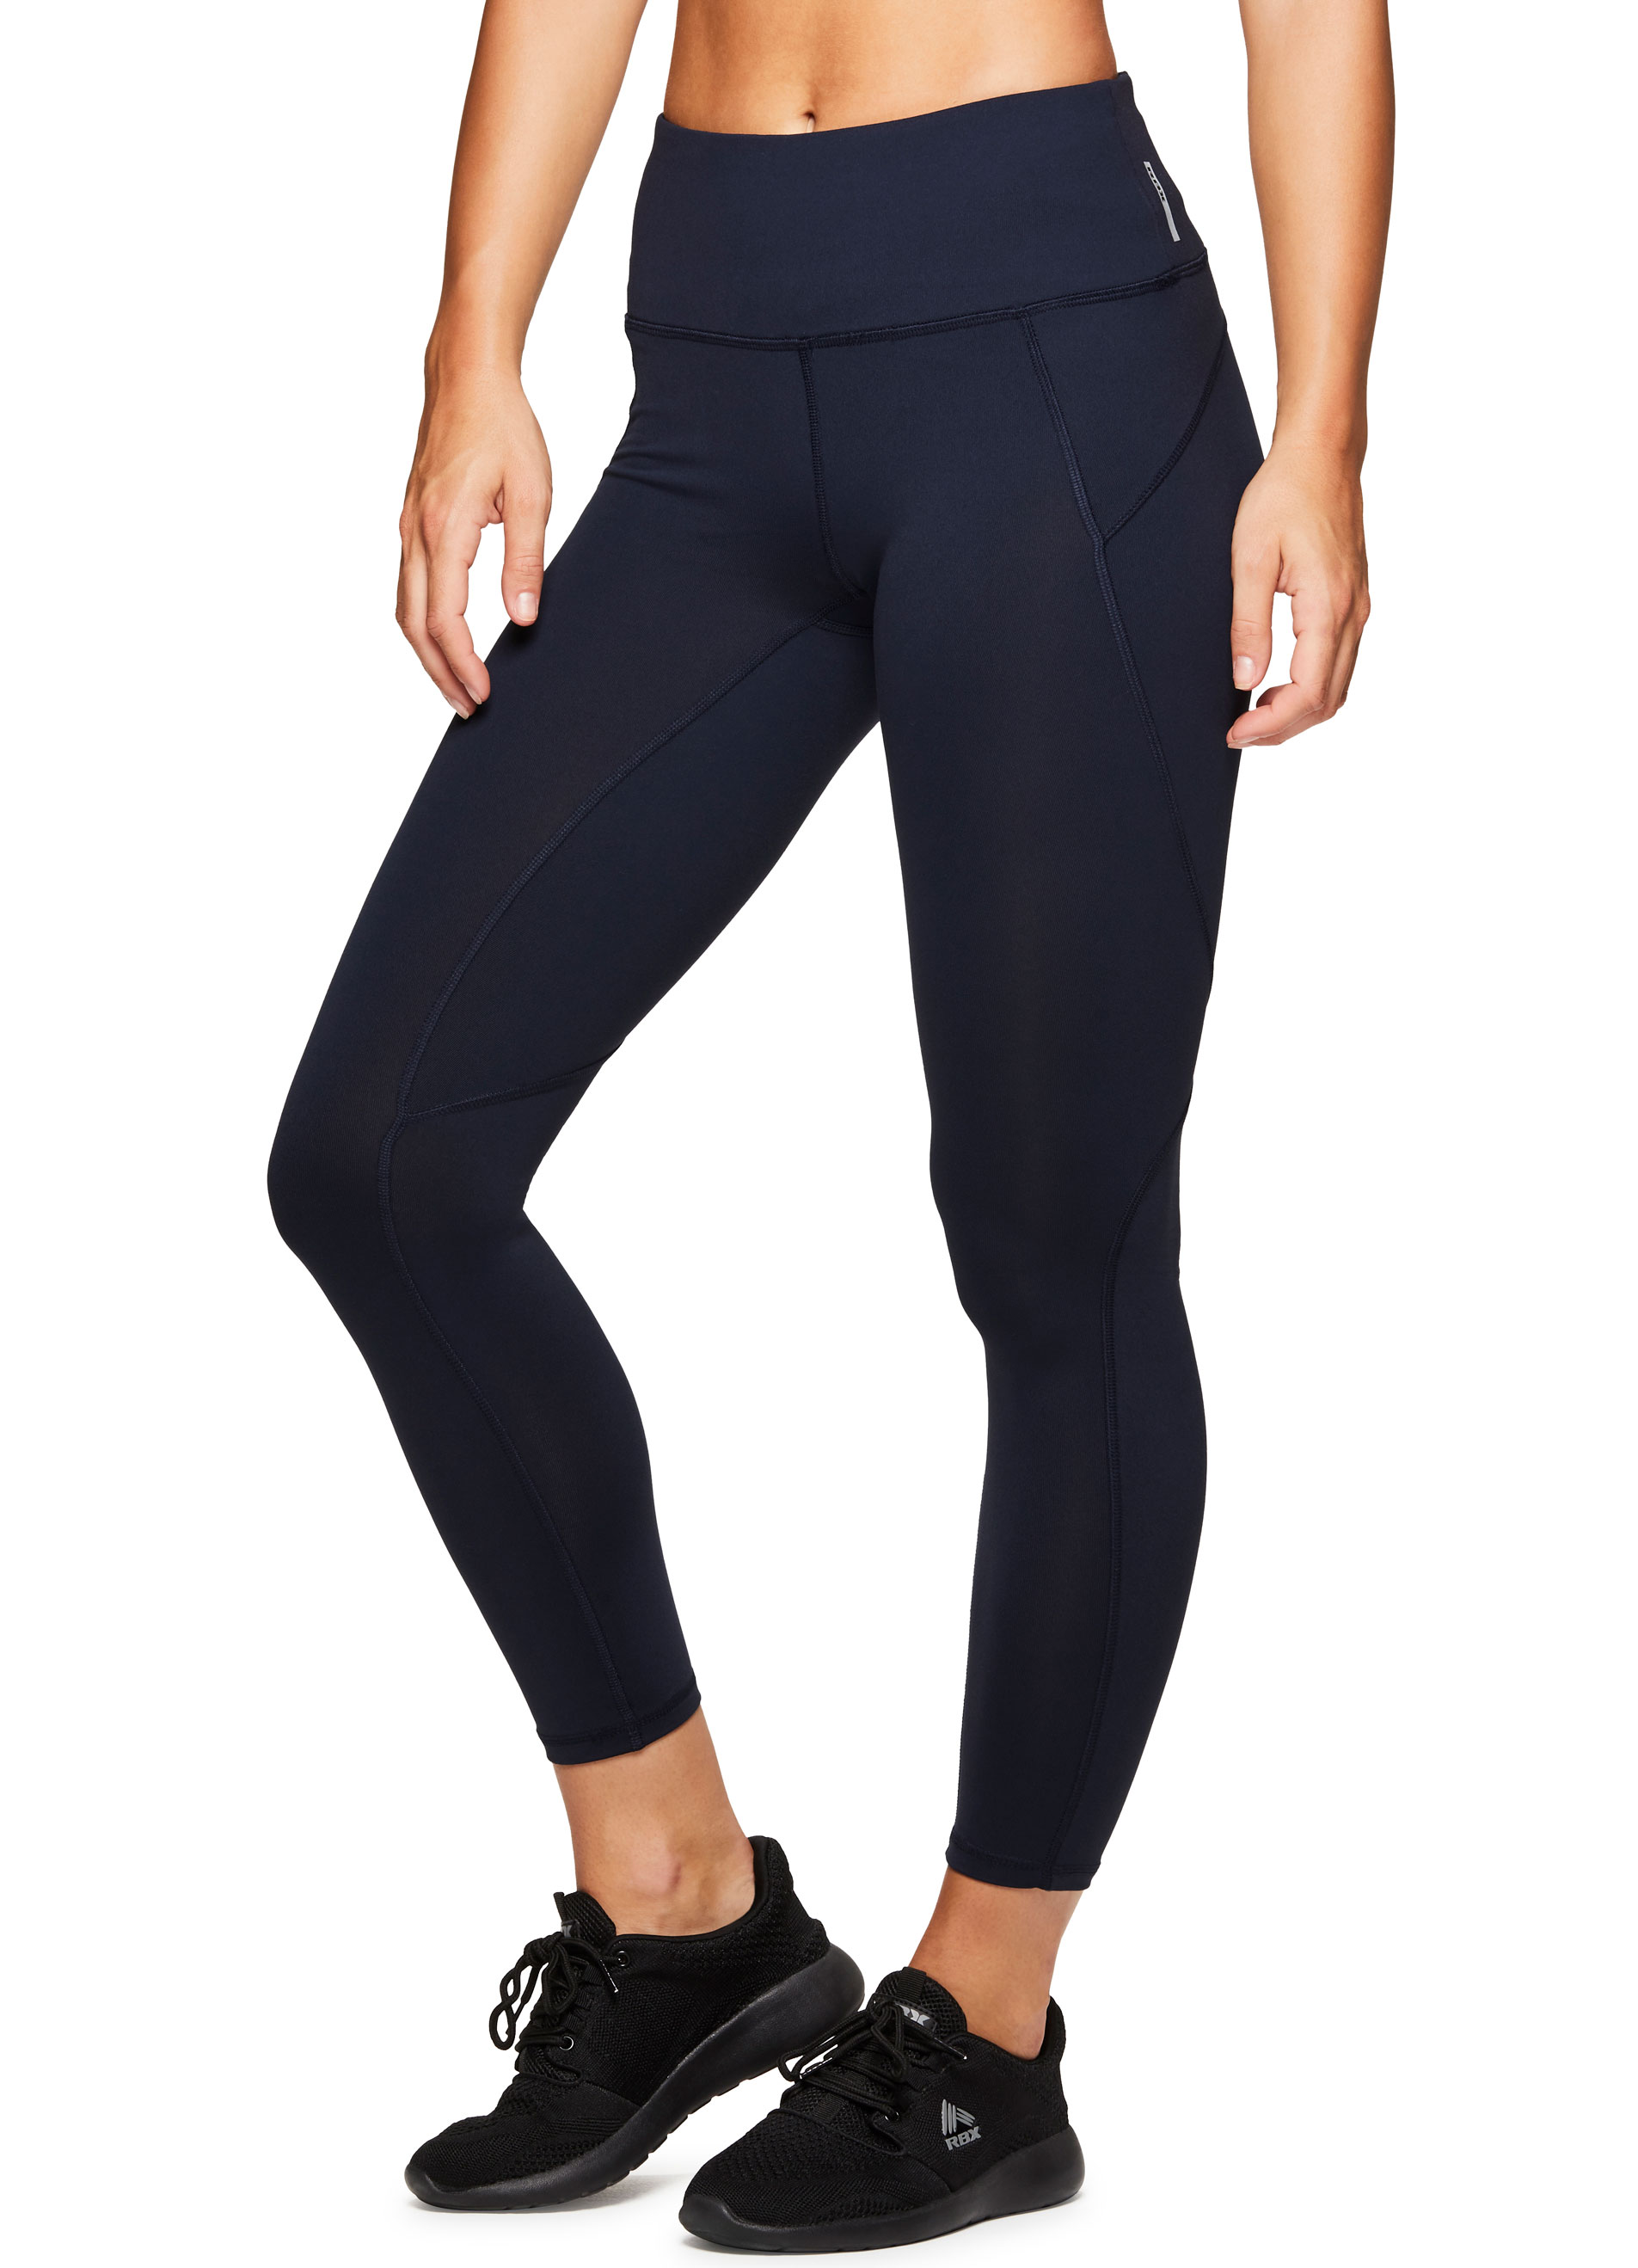 Women's Active Premium Compression Performance Crop Legging